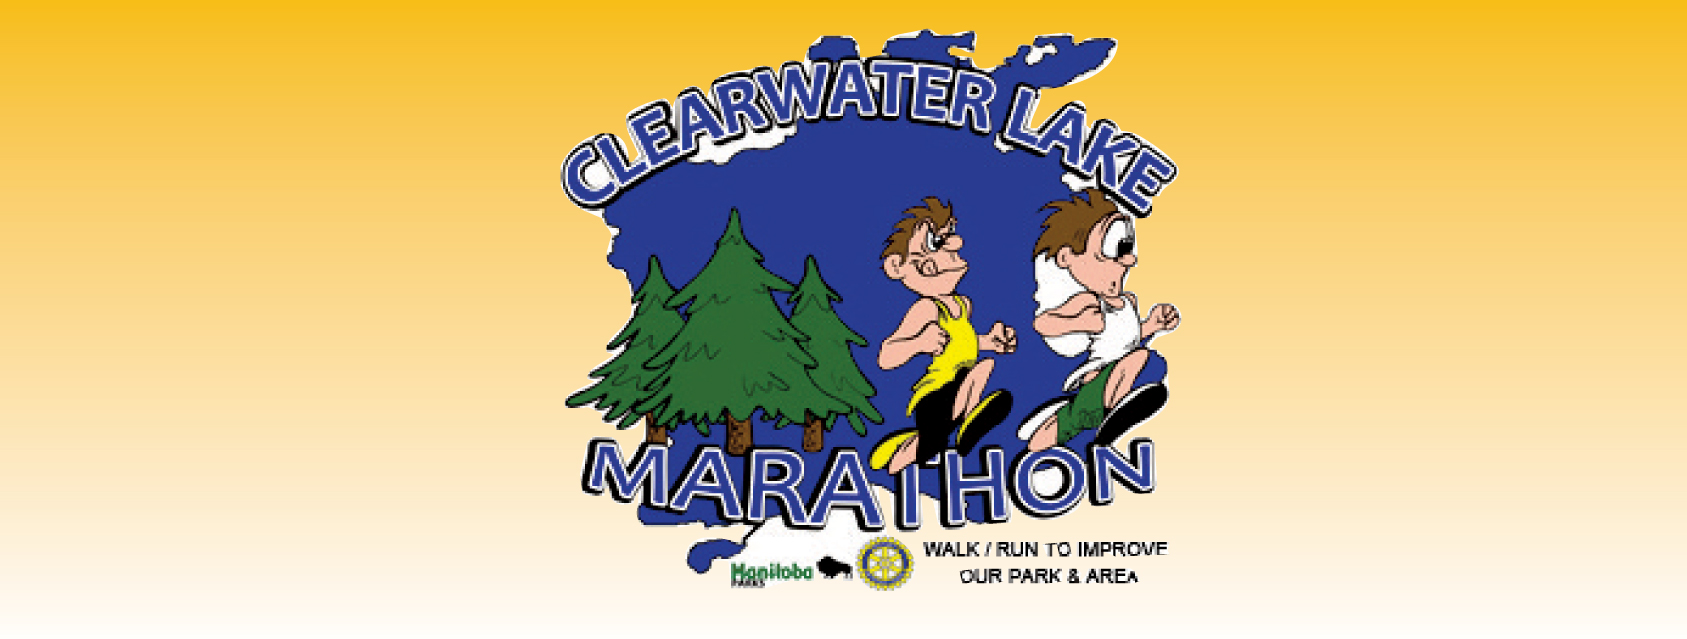 Clearwater Lake Half Marathon